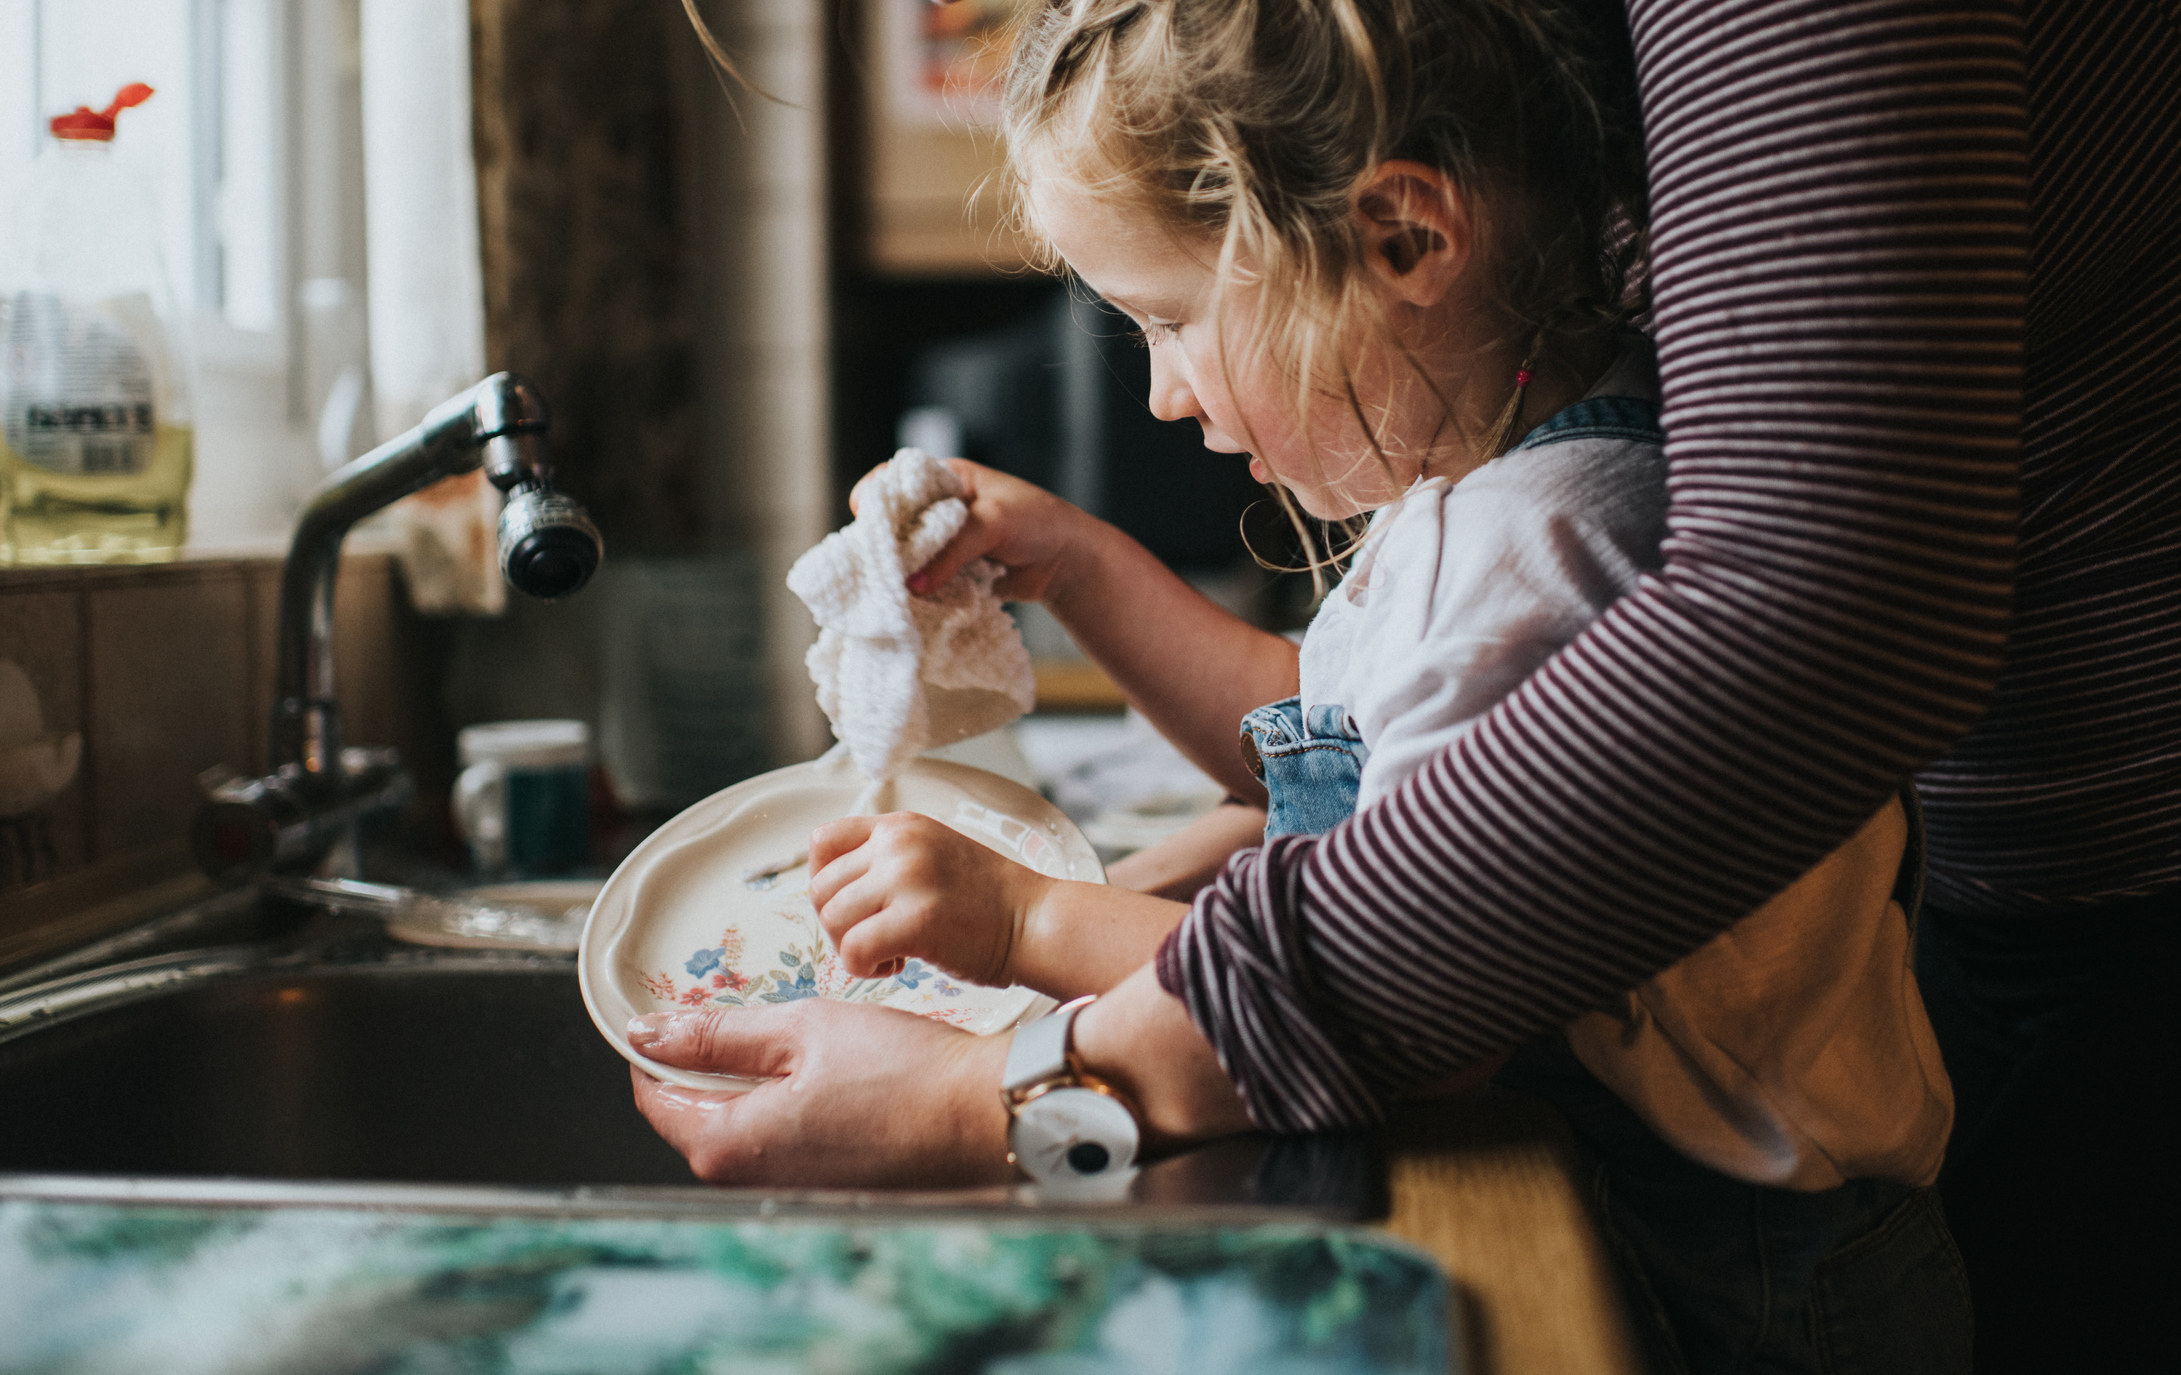 A child is helped by their parent while washing dishes